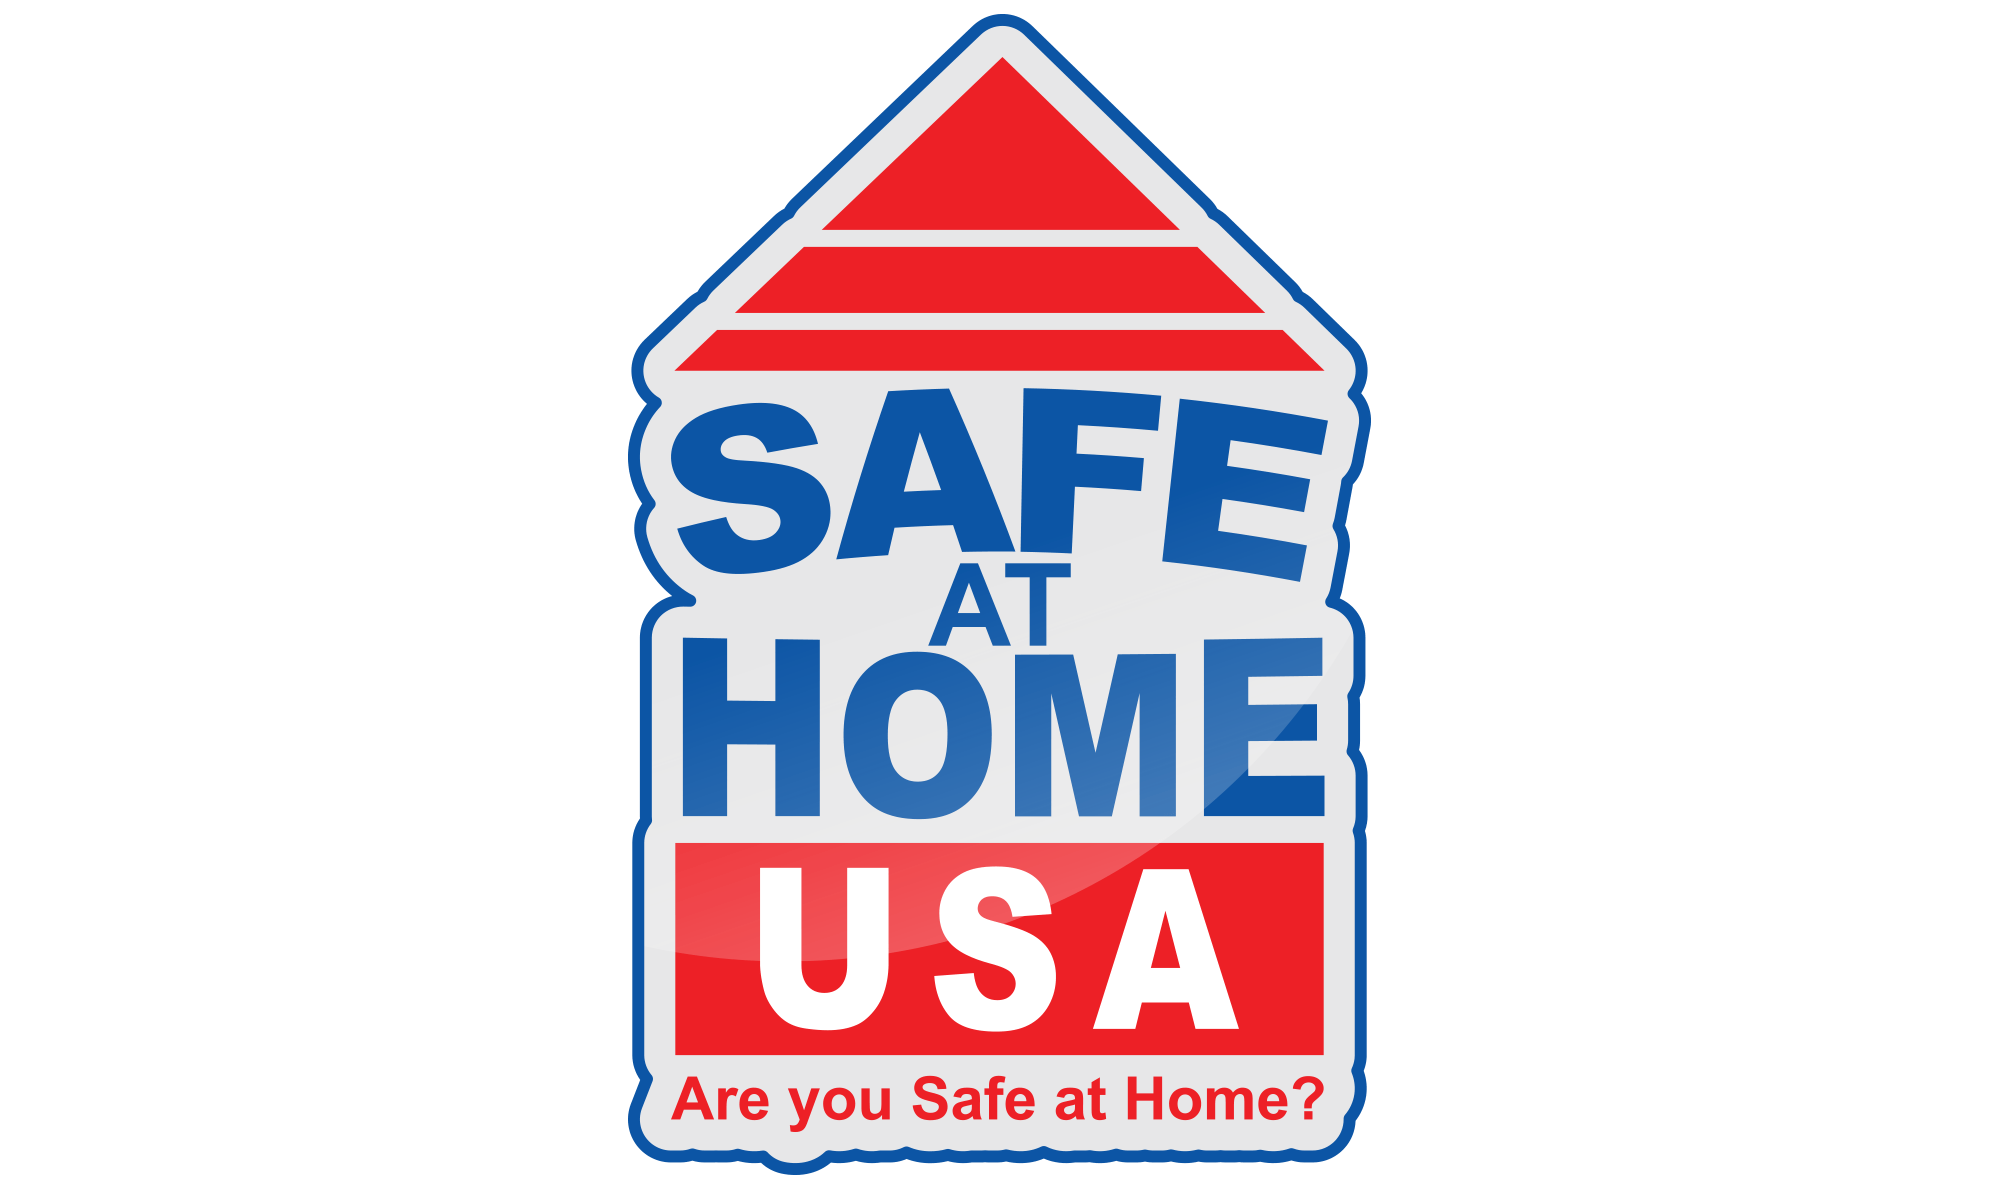 Safe At Home Usa Are You Safe At Home